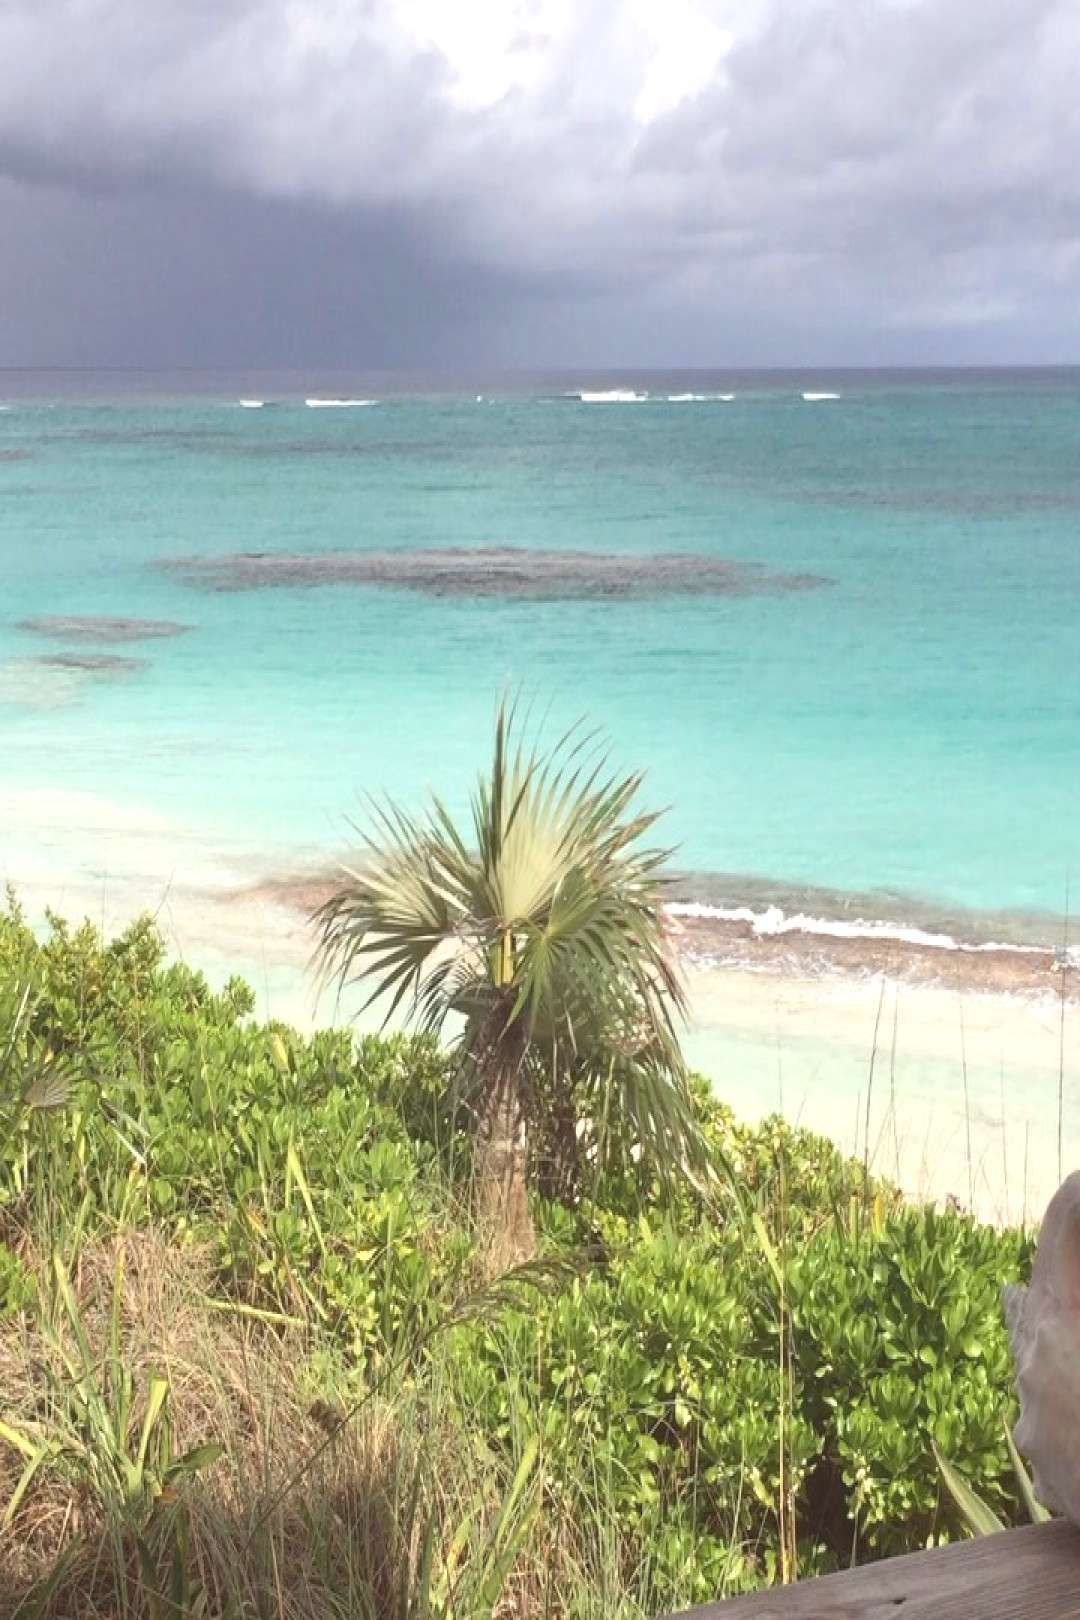 #beachwedding #cloudyday #eleuthera #cayoloco #magical #atlanti #even #the #is #on #a Even a #cloudyday #cayoloco #eleuthera is magical on the #atlantiYou can find Beach wedding and more on our website.Even a #cloudyday #cayol...